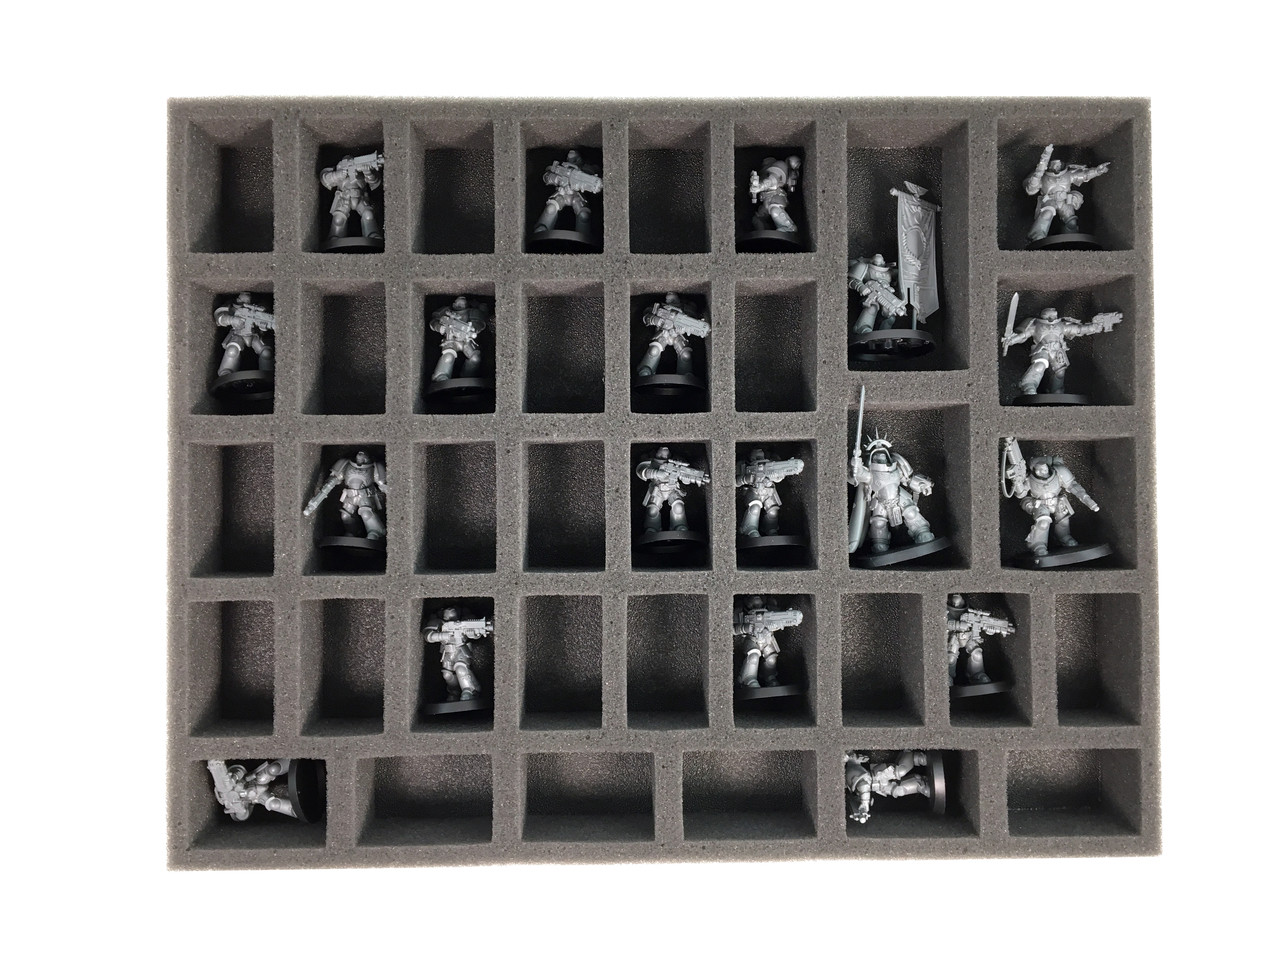 Primaris Marine Foam Kit For The P A C K 720 Bfl Battle Foam 1.5 inch (38 mm) thick tray with 33x 2 1/8 x 1 1/4 inch (53 x 31 mm) cut outs. battle foam